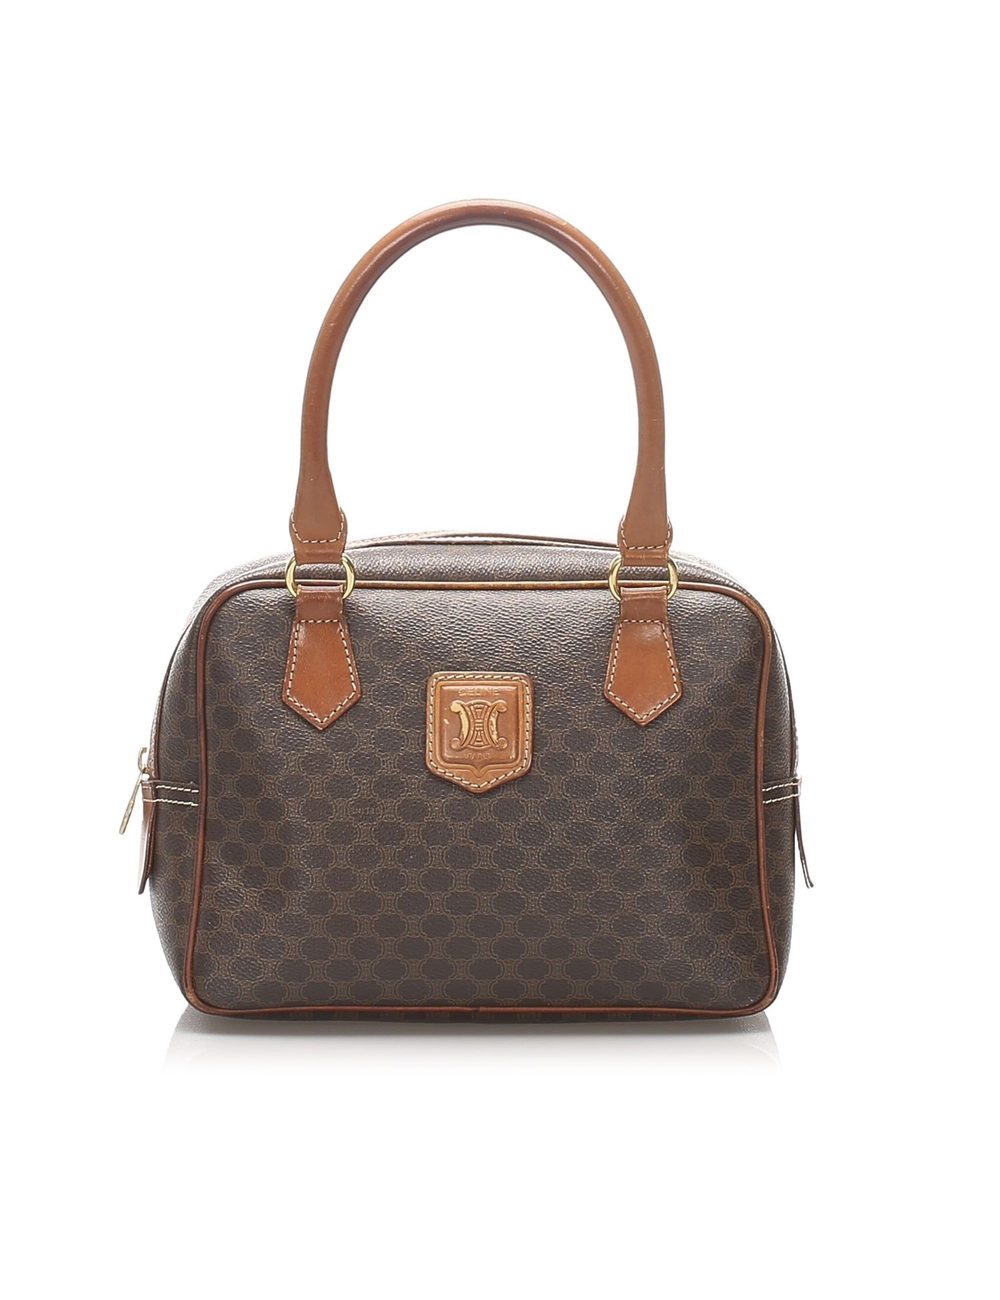 Product Details: Brown Celine Macadam Handbag Bag. This handbag features a PVC body, rolled leather